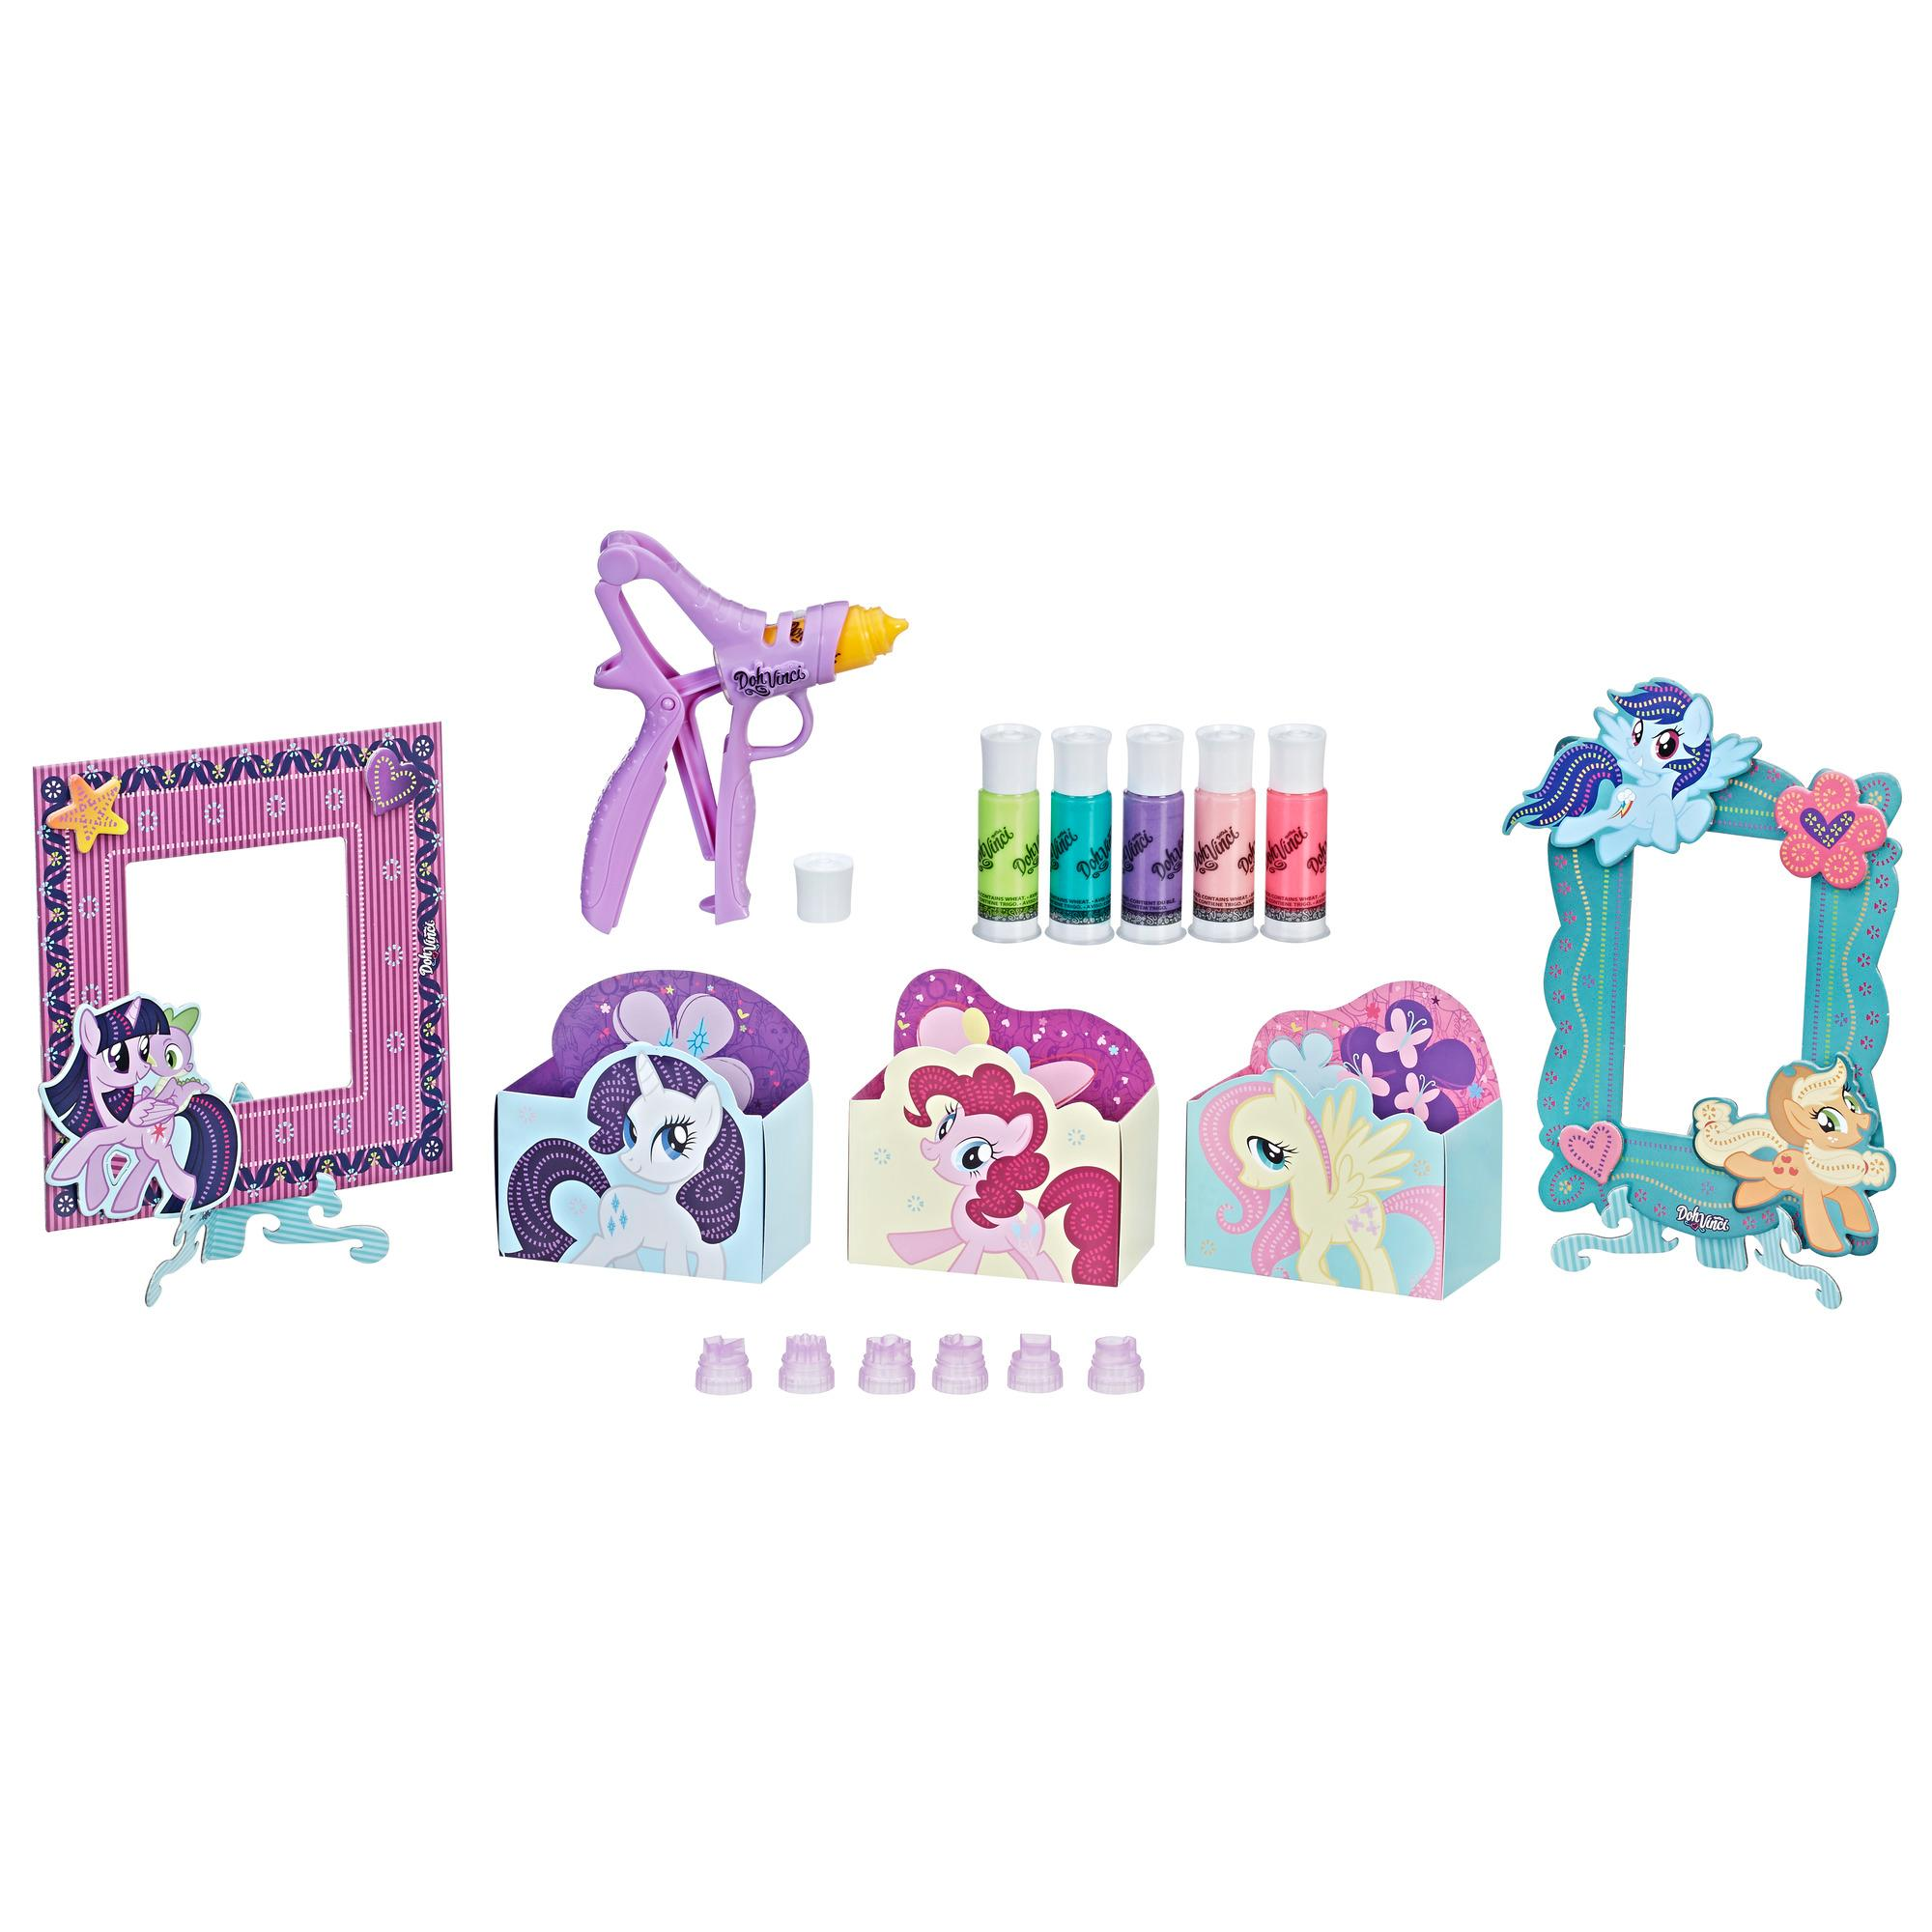 DOV KIT DÉCORATION MY LITTLE PONY